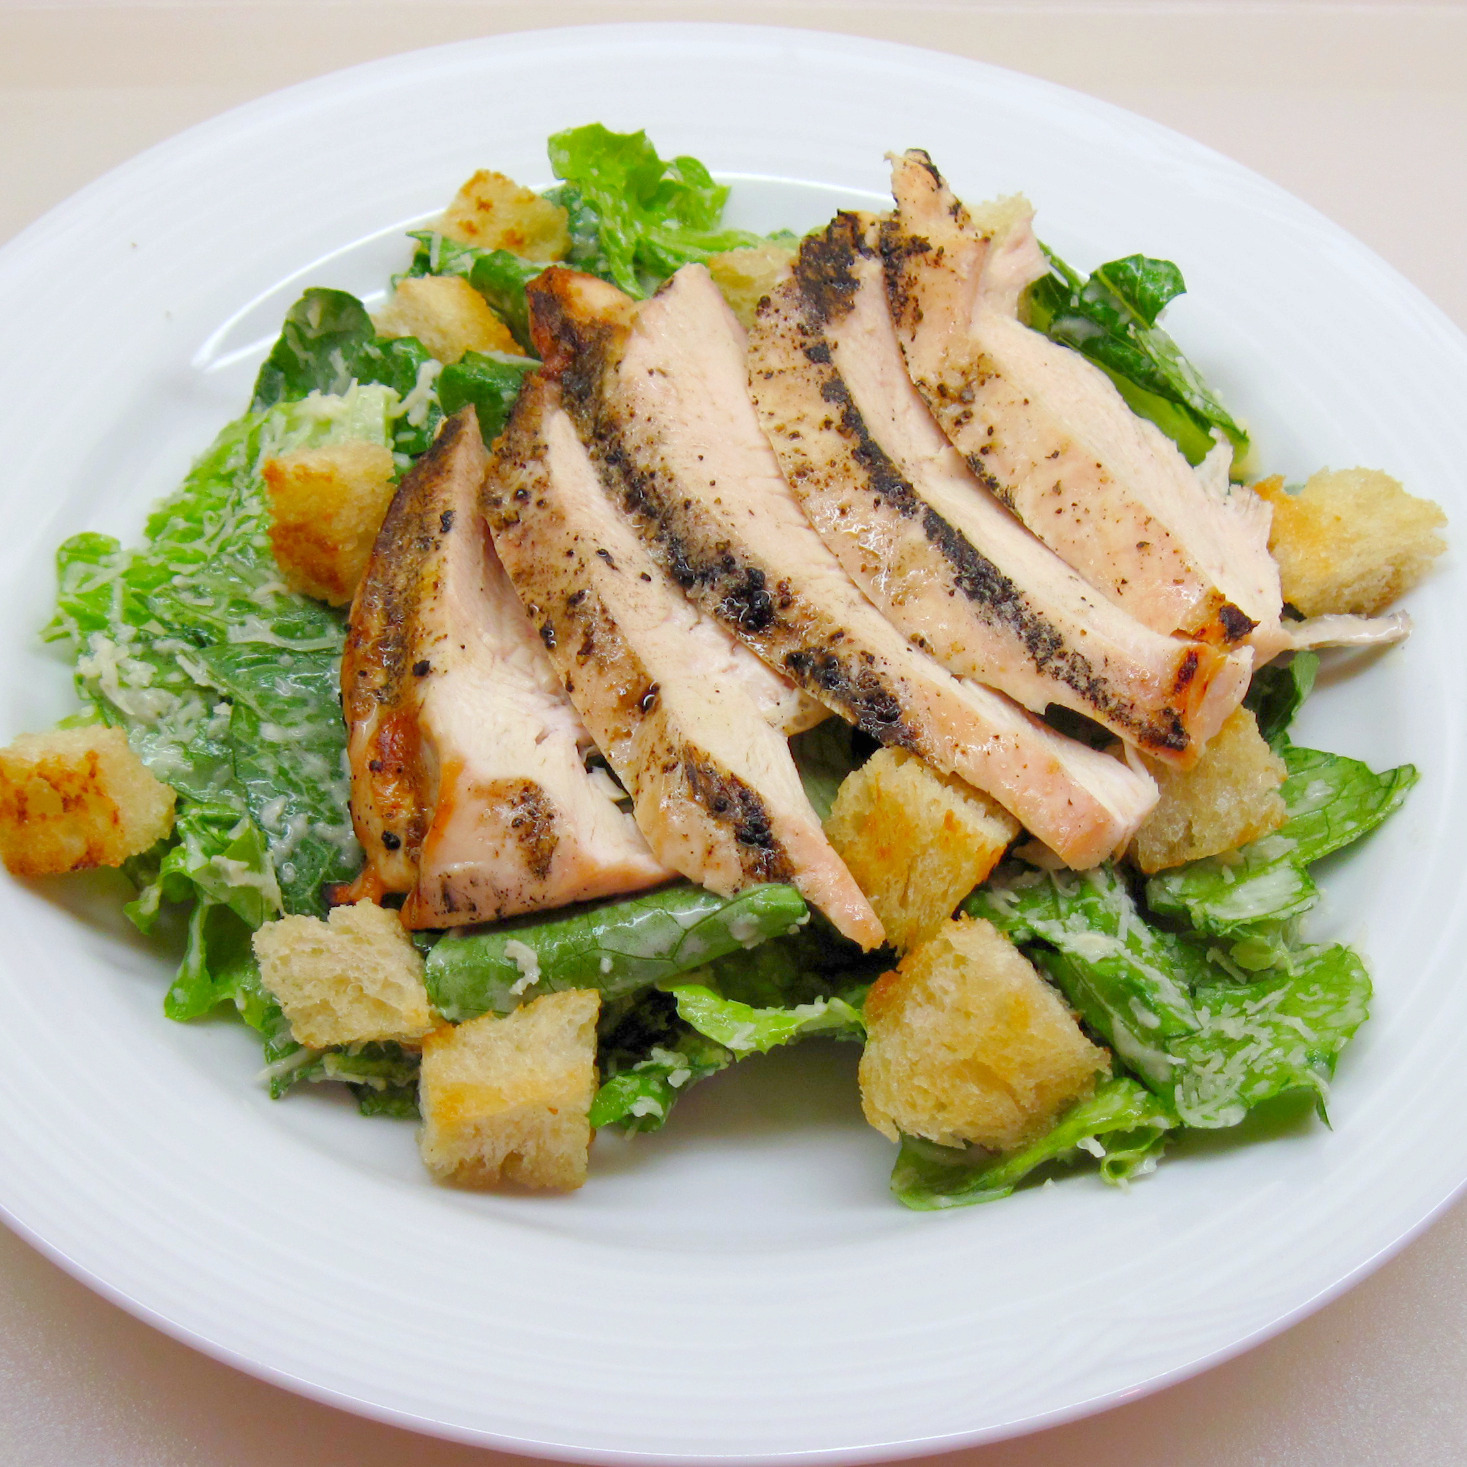 Caesar Salad with Grilled Chicken | In the kitchen with Kath